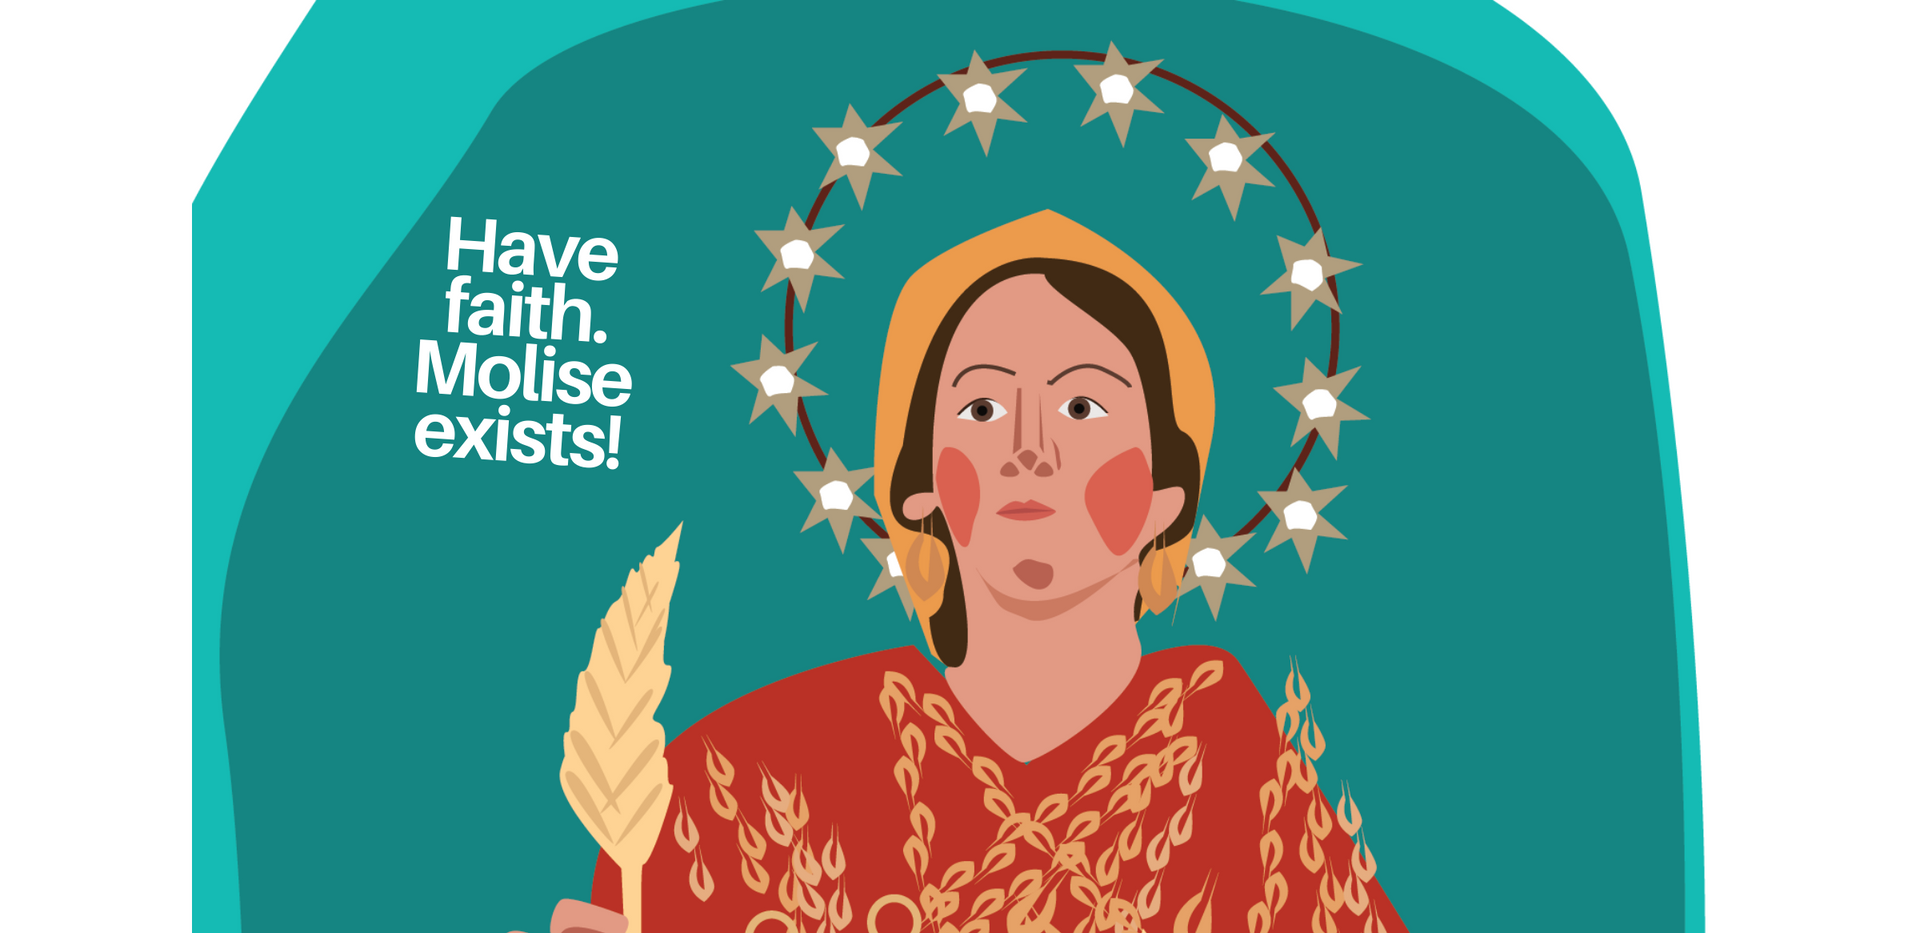 Have faith. Molise exists! (1).png